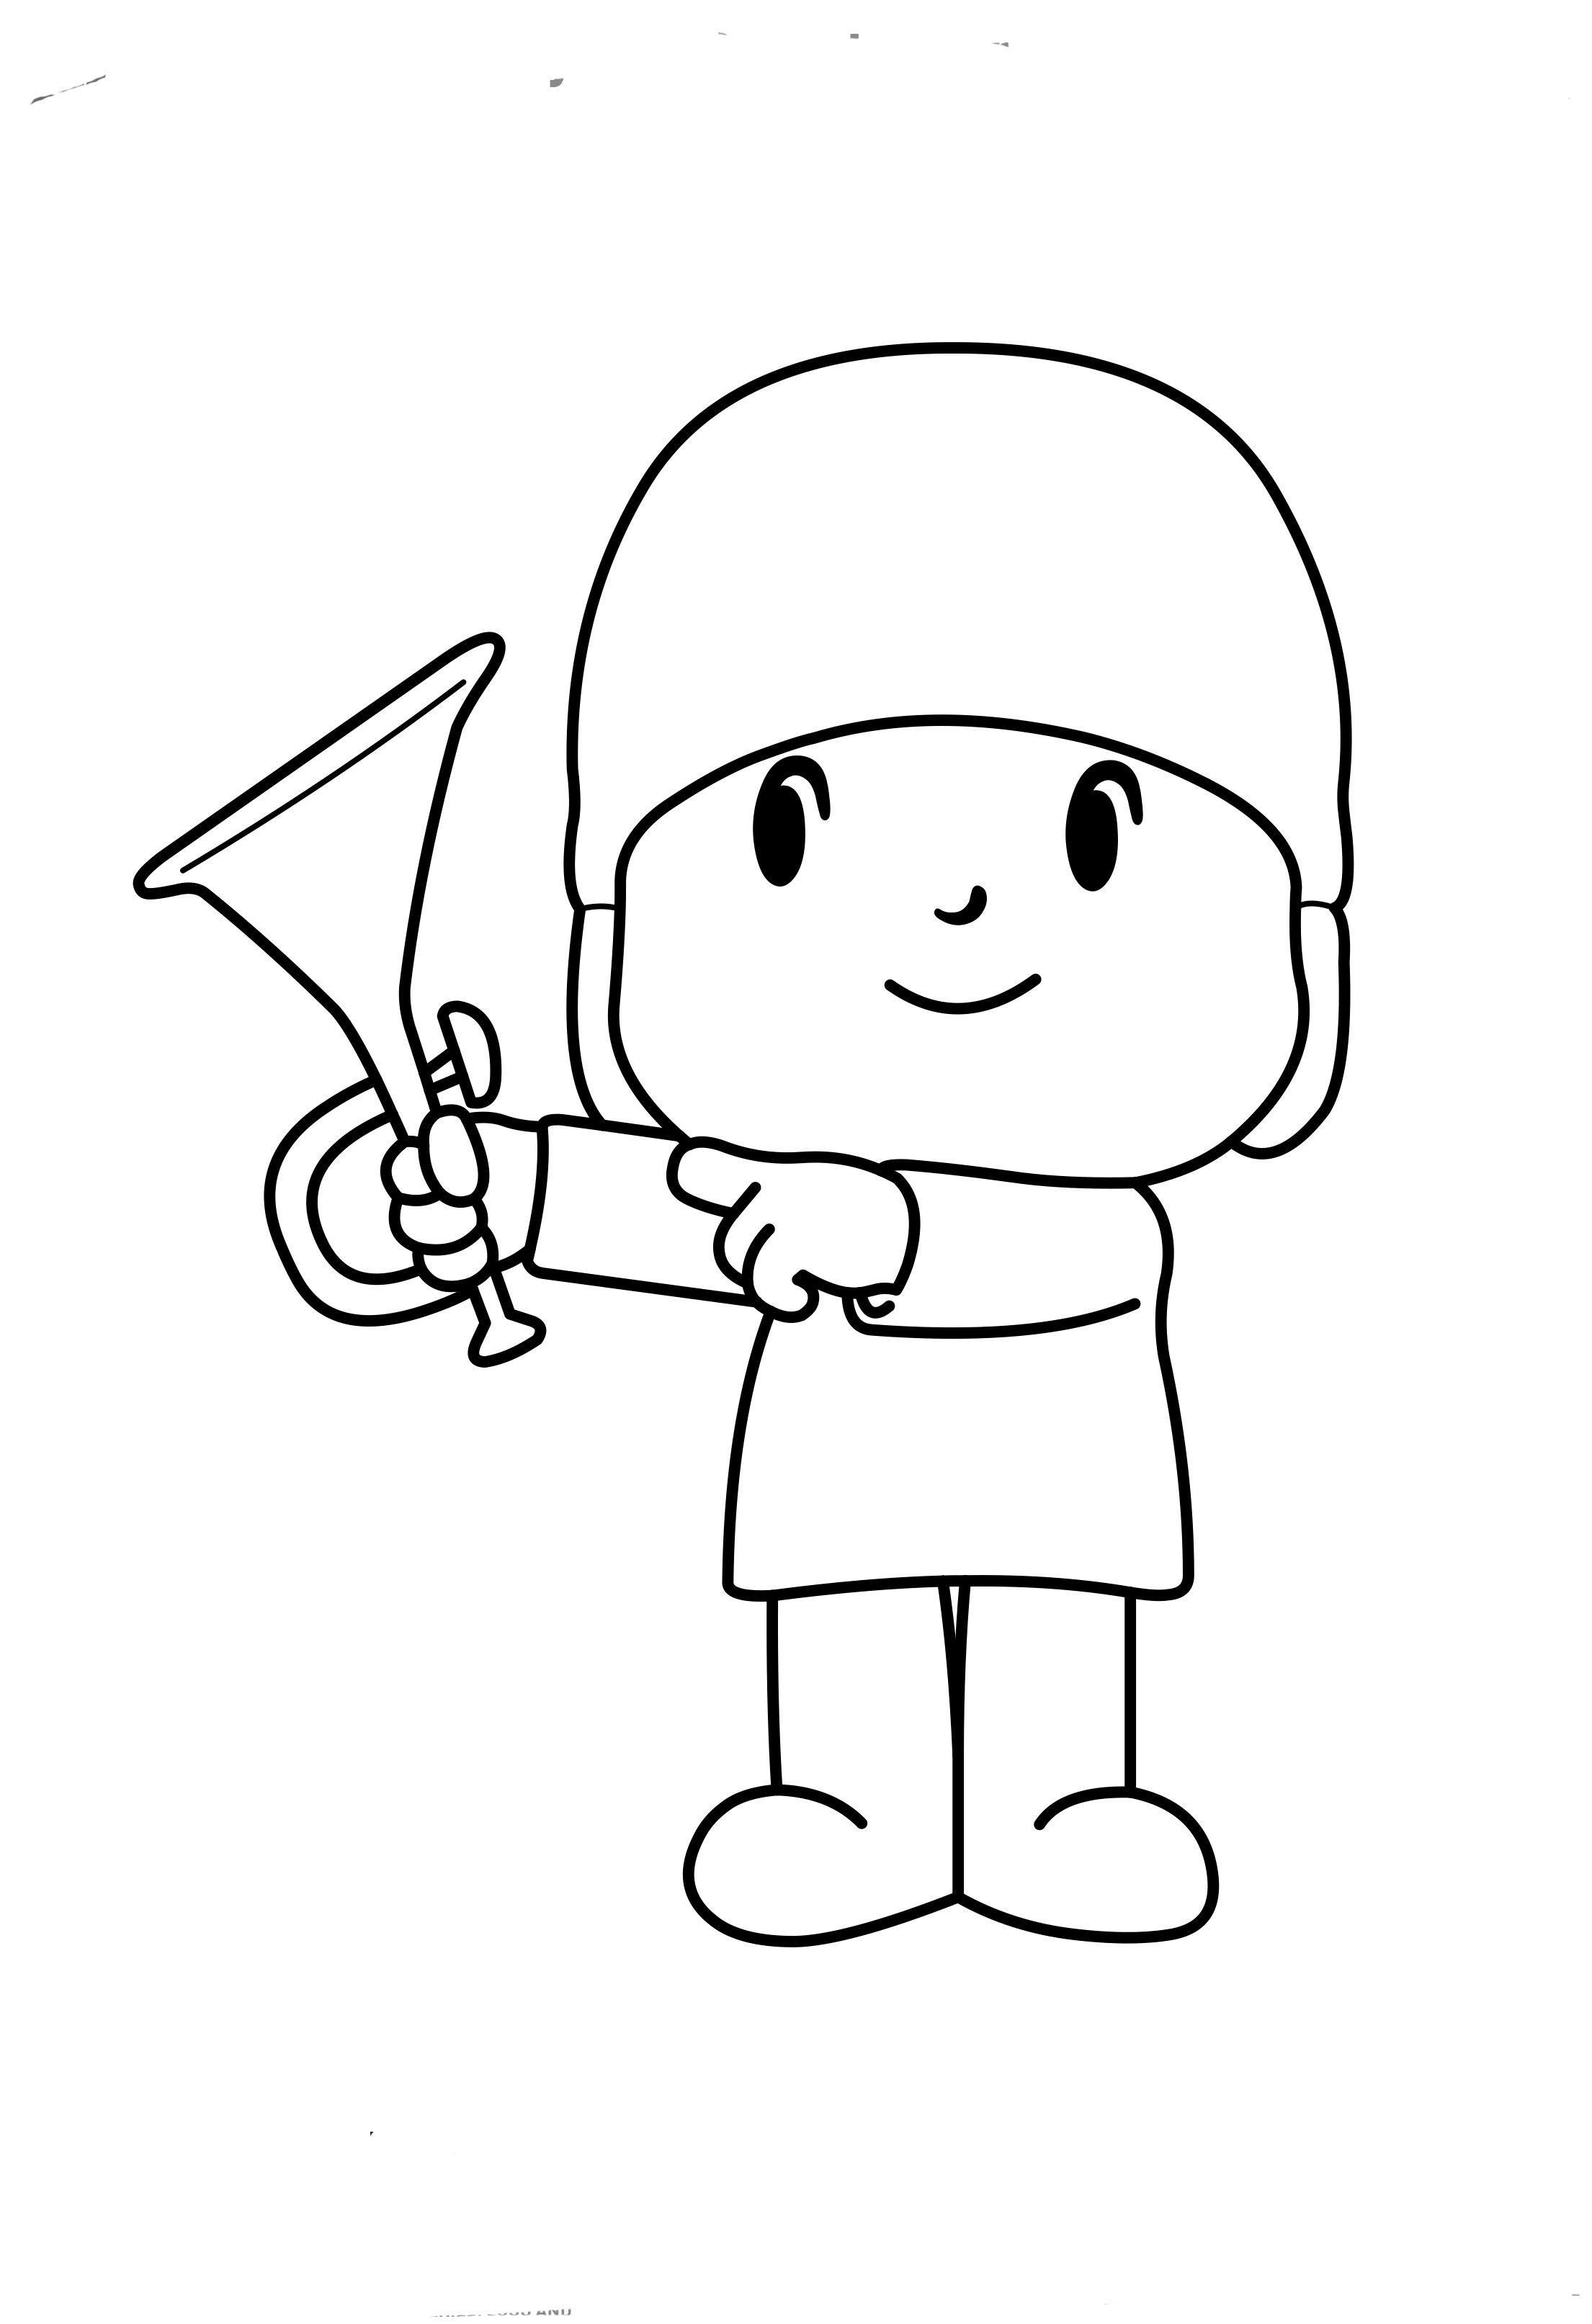 Dibujos Para Iluminar En Linea Pocoyo Páginas Para Colorear Best Coloring Pages For Kids